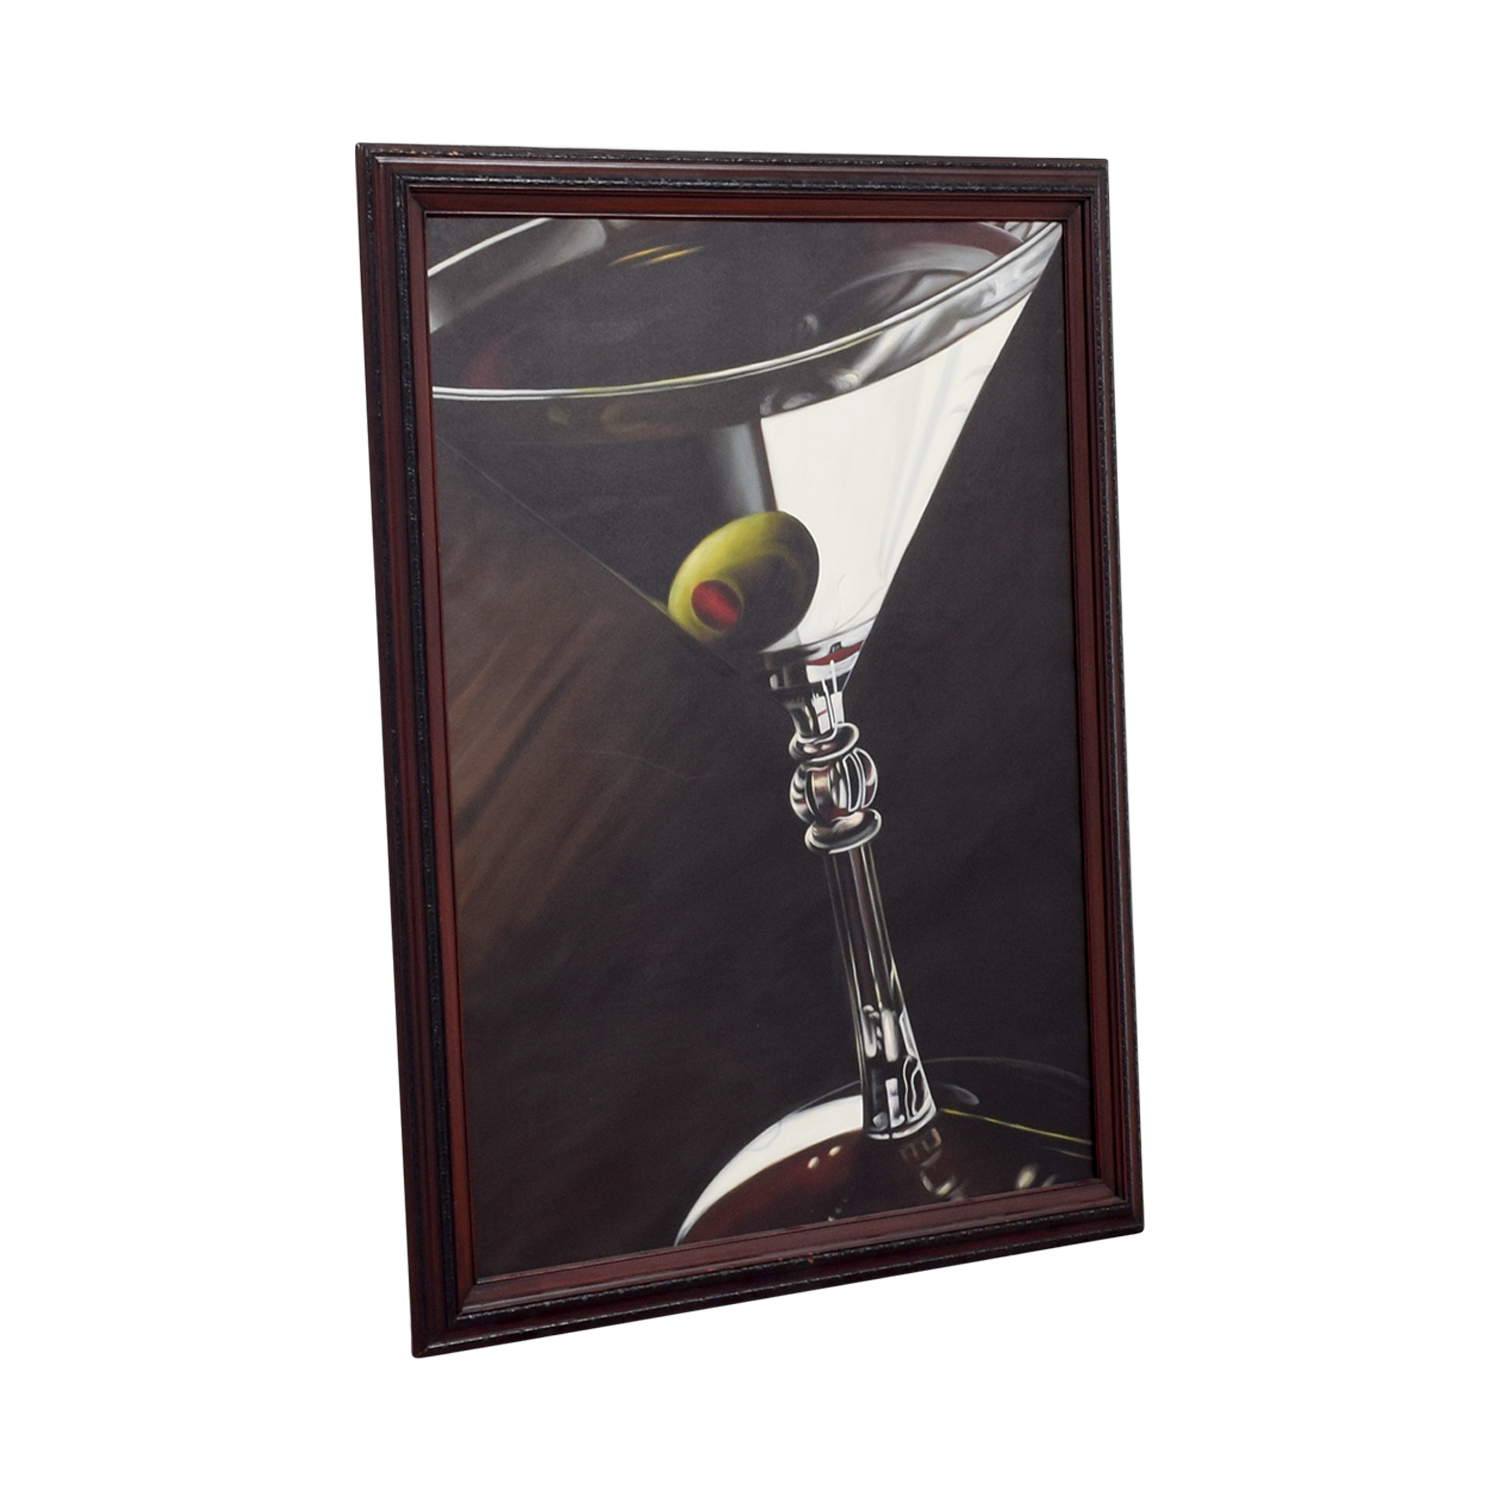 Lithograph of Martini Glass with Olive used